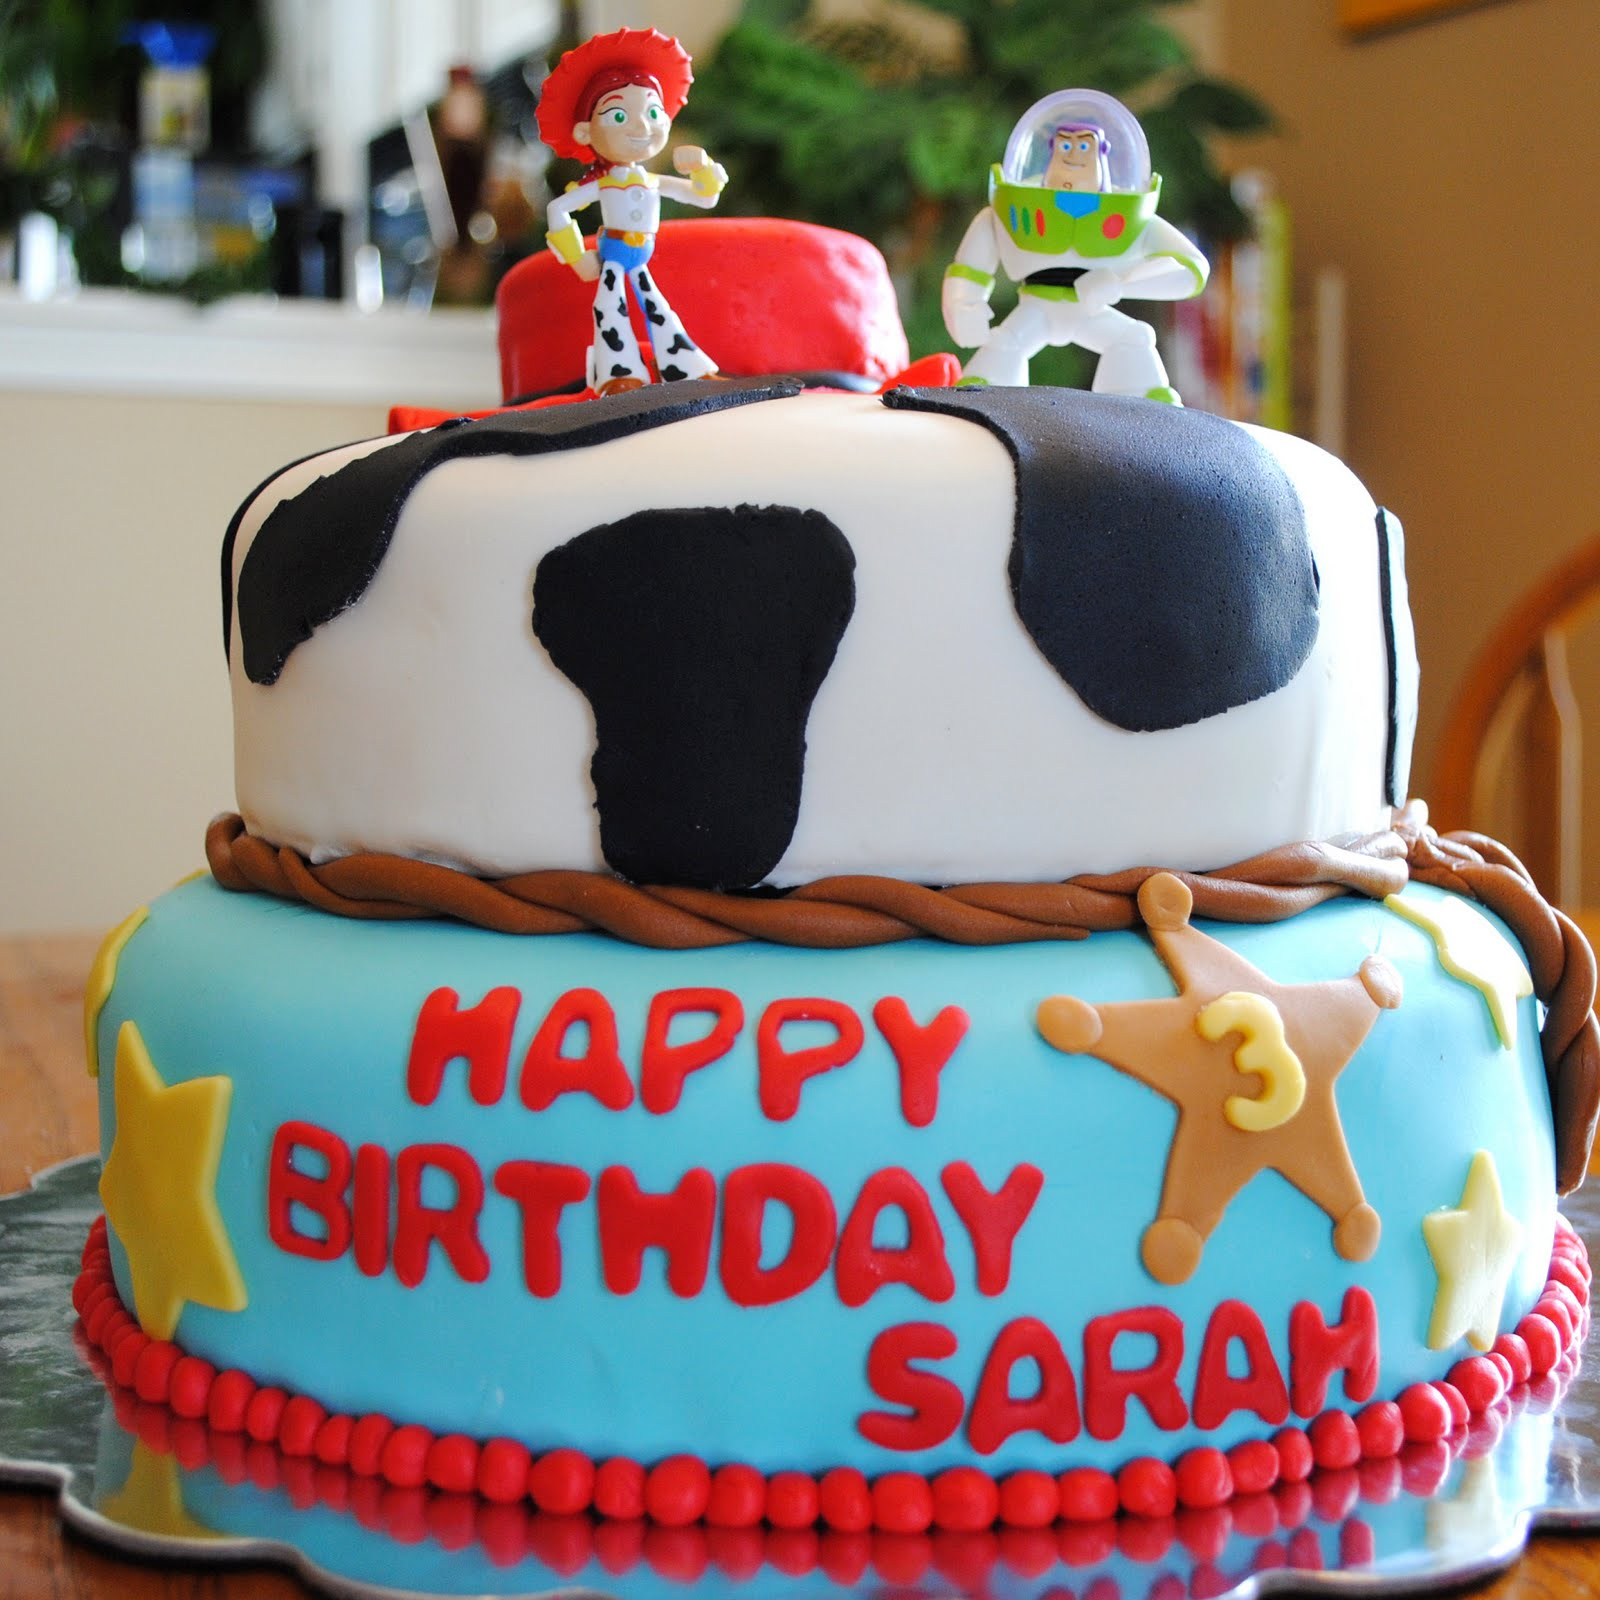 Birthday Cake Toy : Homemade by holman fondant toy story birthday cake